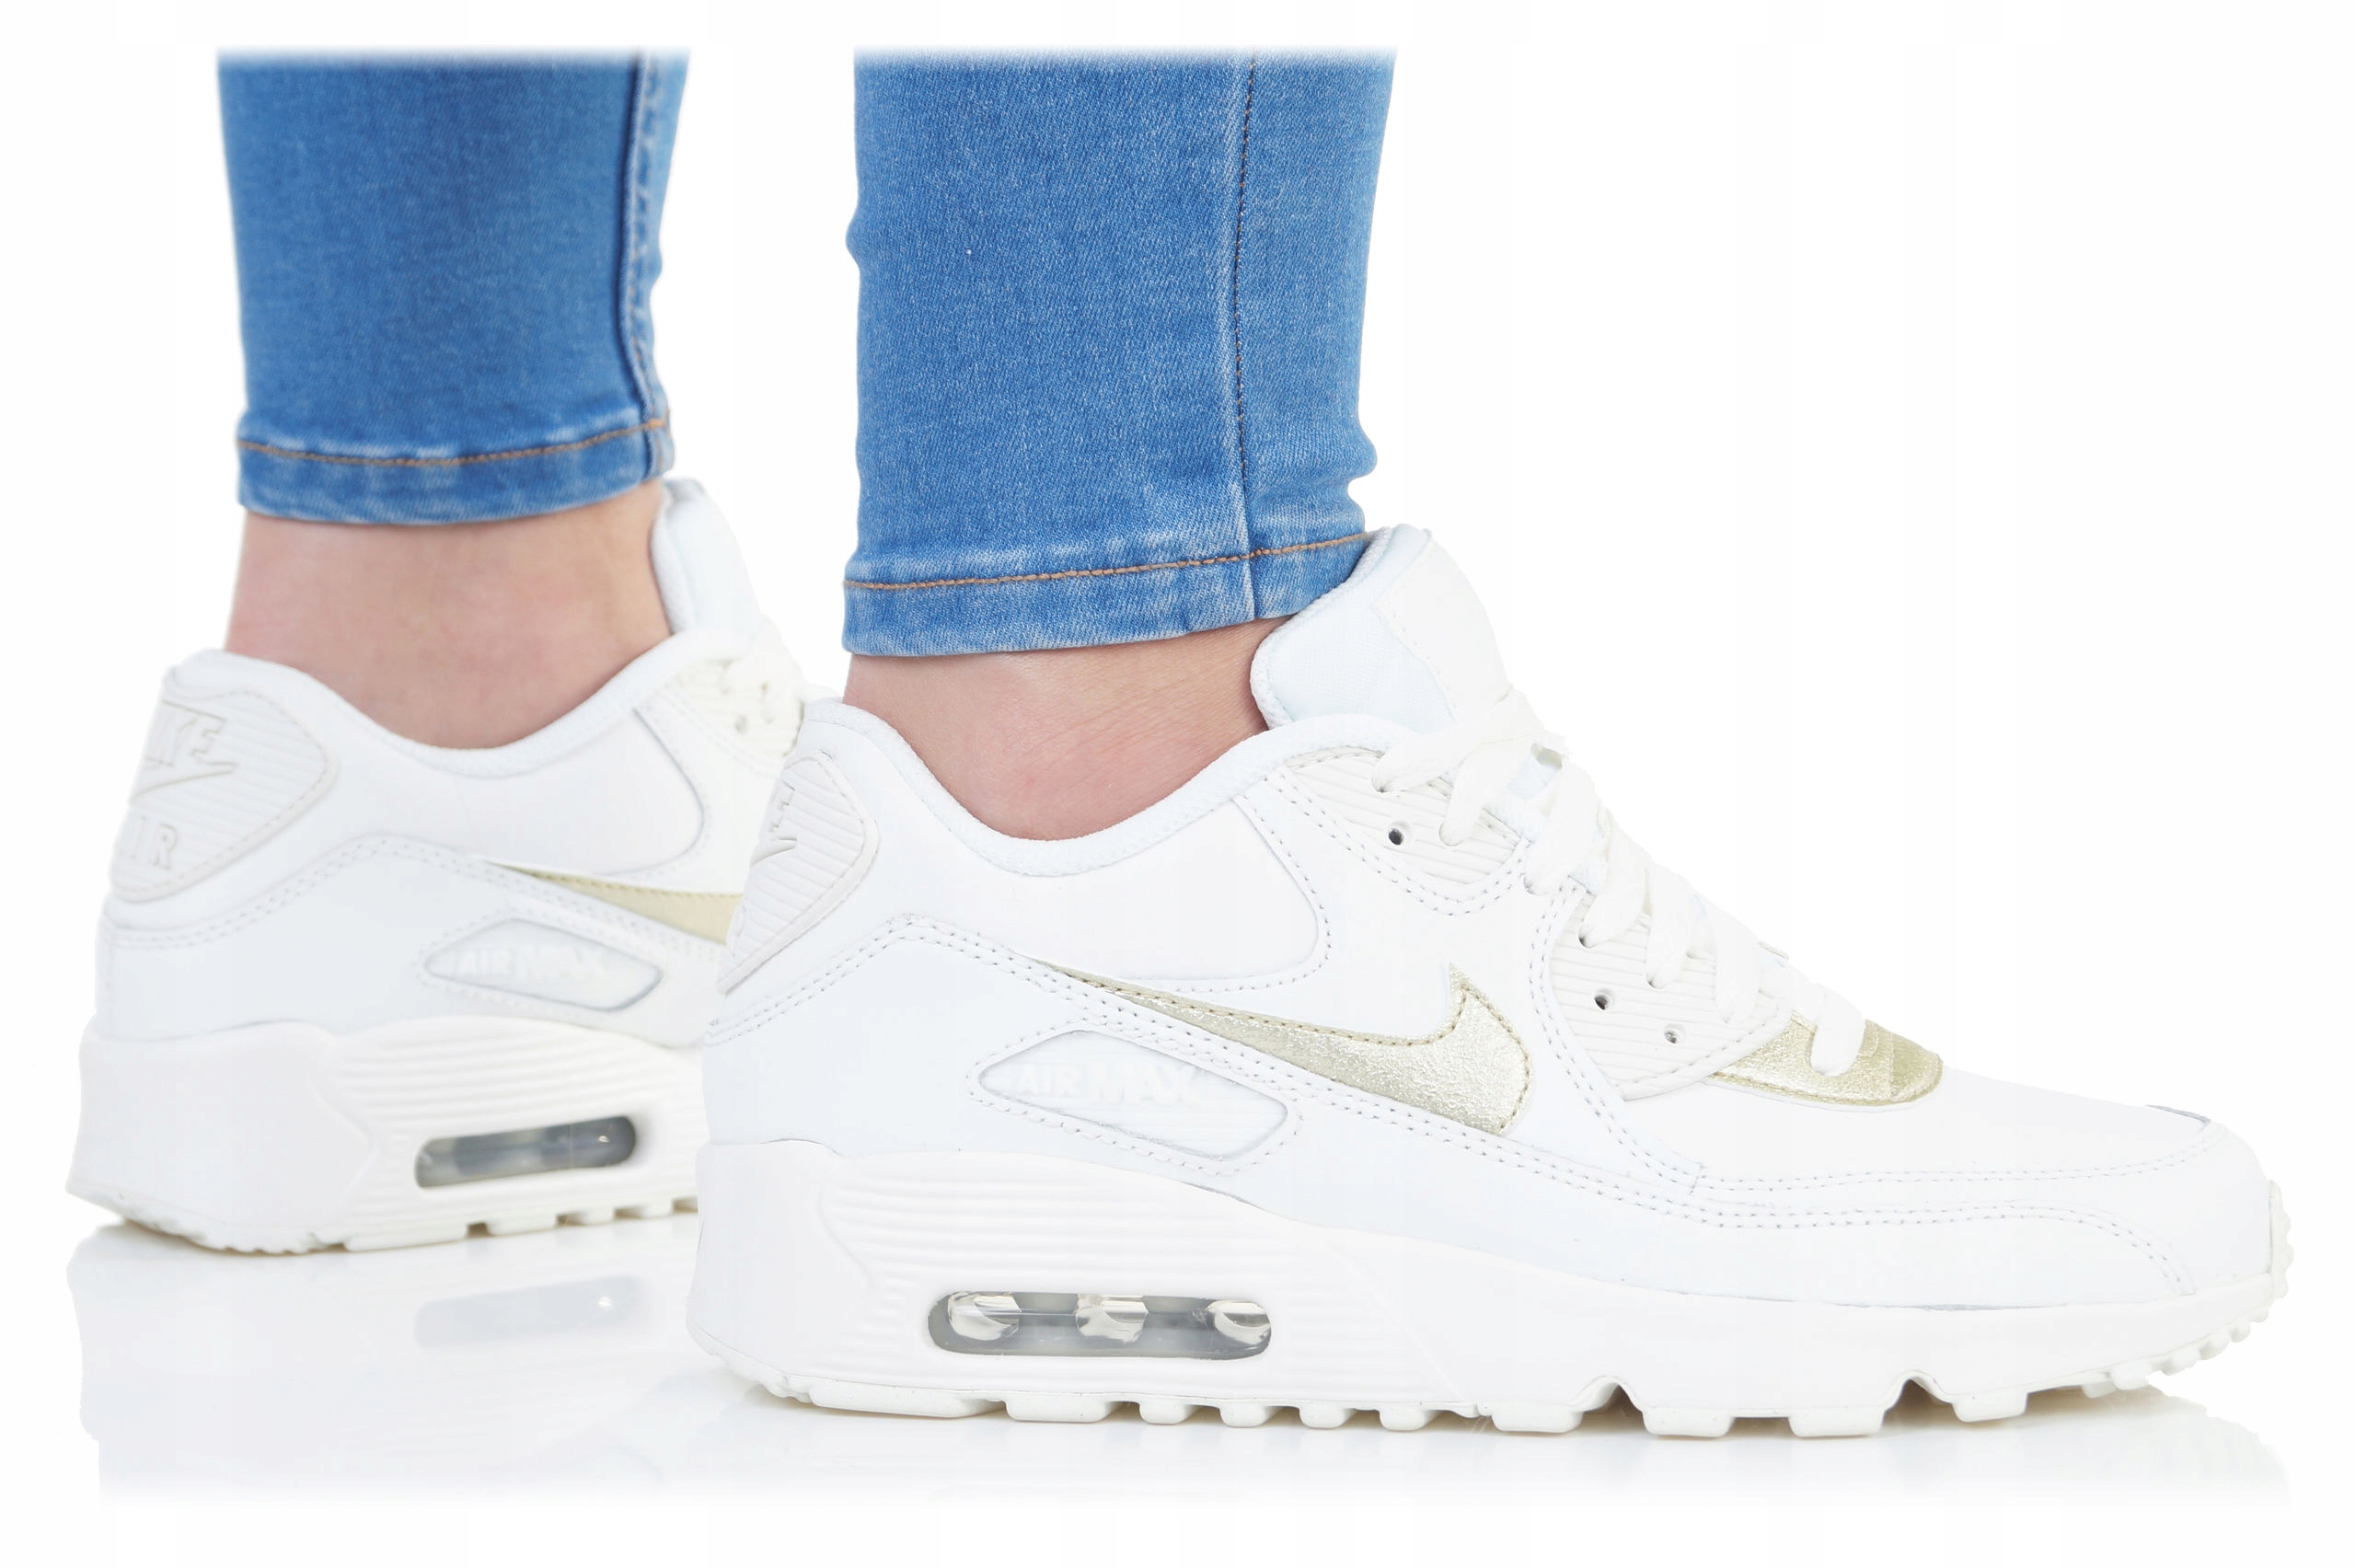 low priced 294d7 1704e BUTY NIKE DAMSKIE AIR MAX 90 LTR (GS) 833376-103